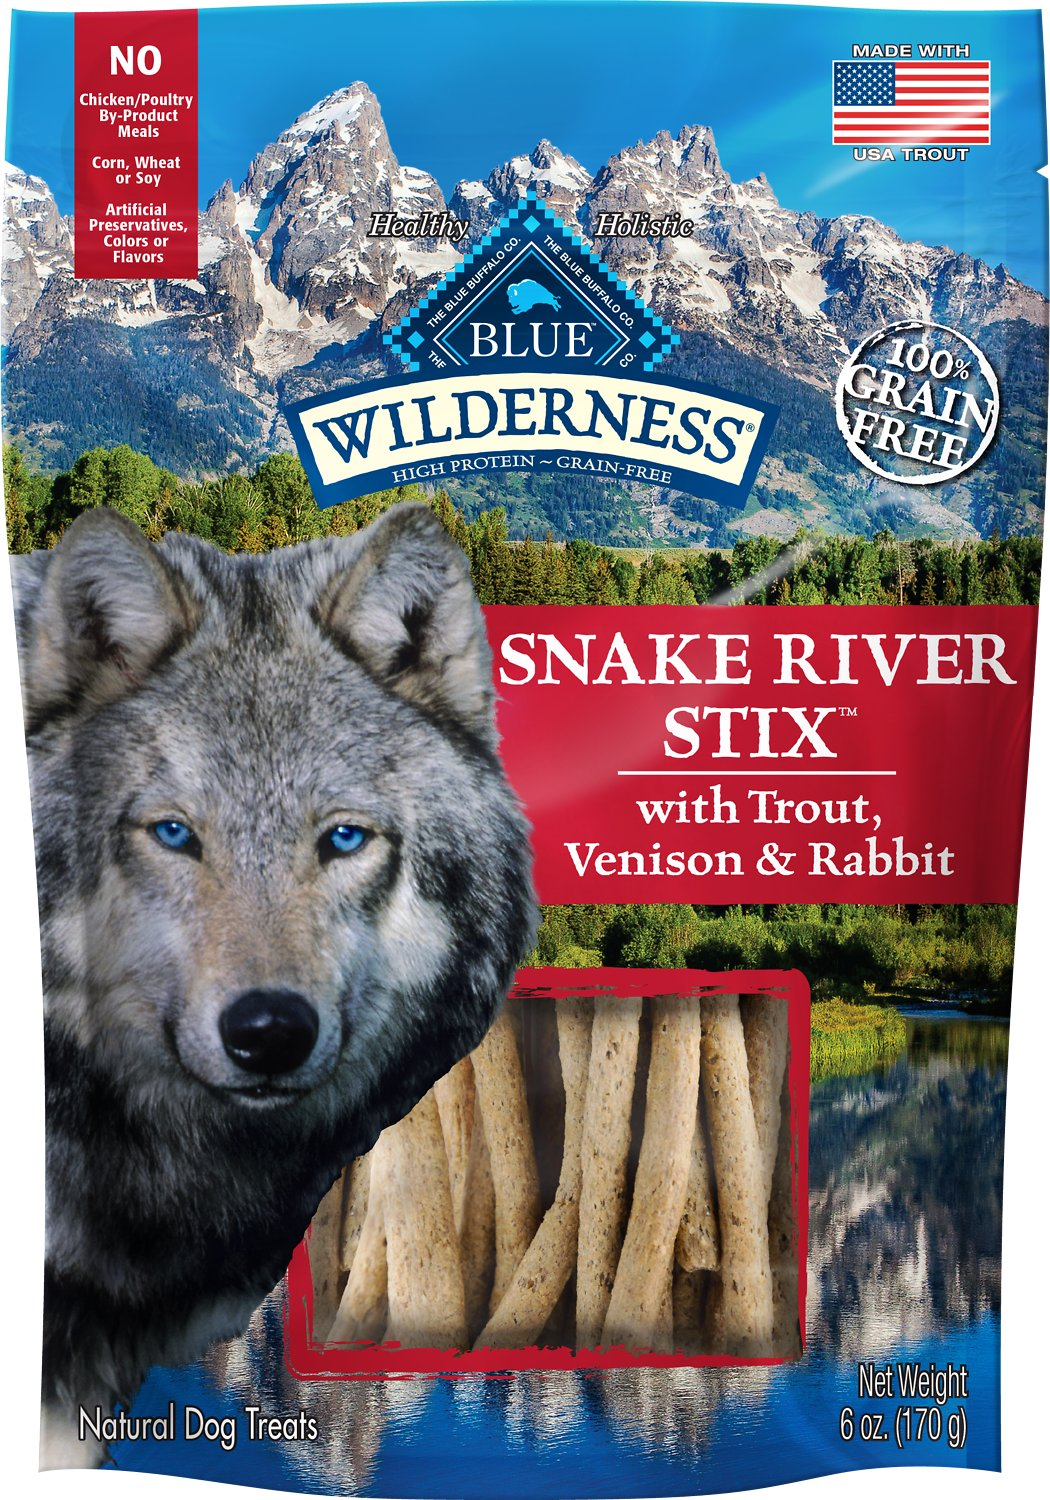 Blue Buffalo Wilderness Snake River Stix Trout, Venison & Rabbit Grain-Free Dog Treats, 6-oz bag